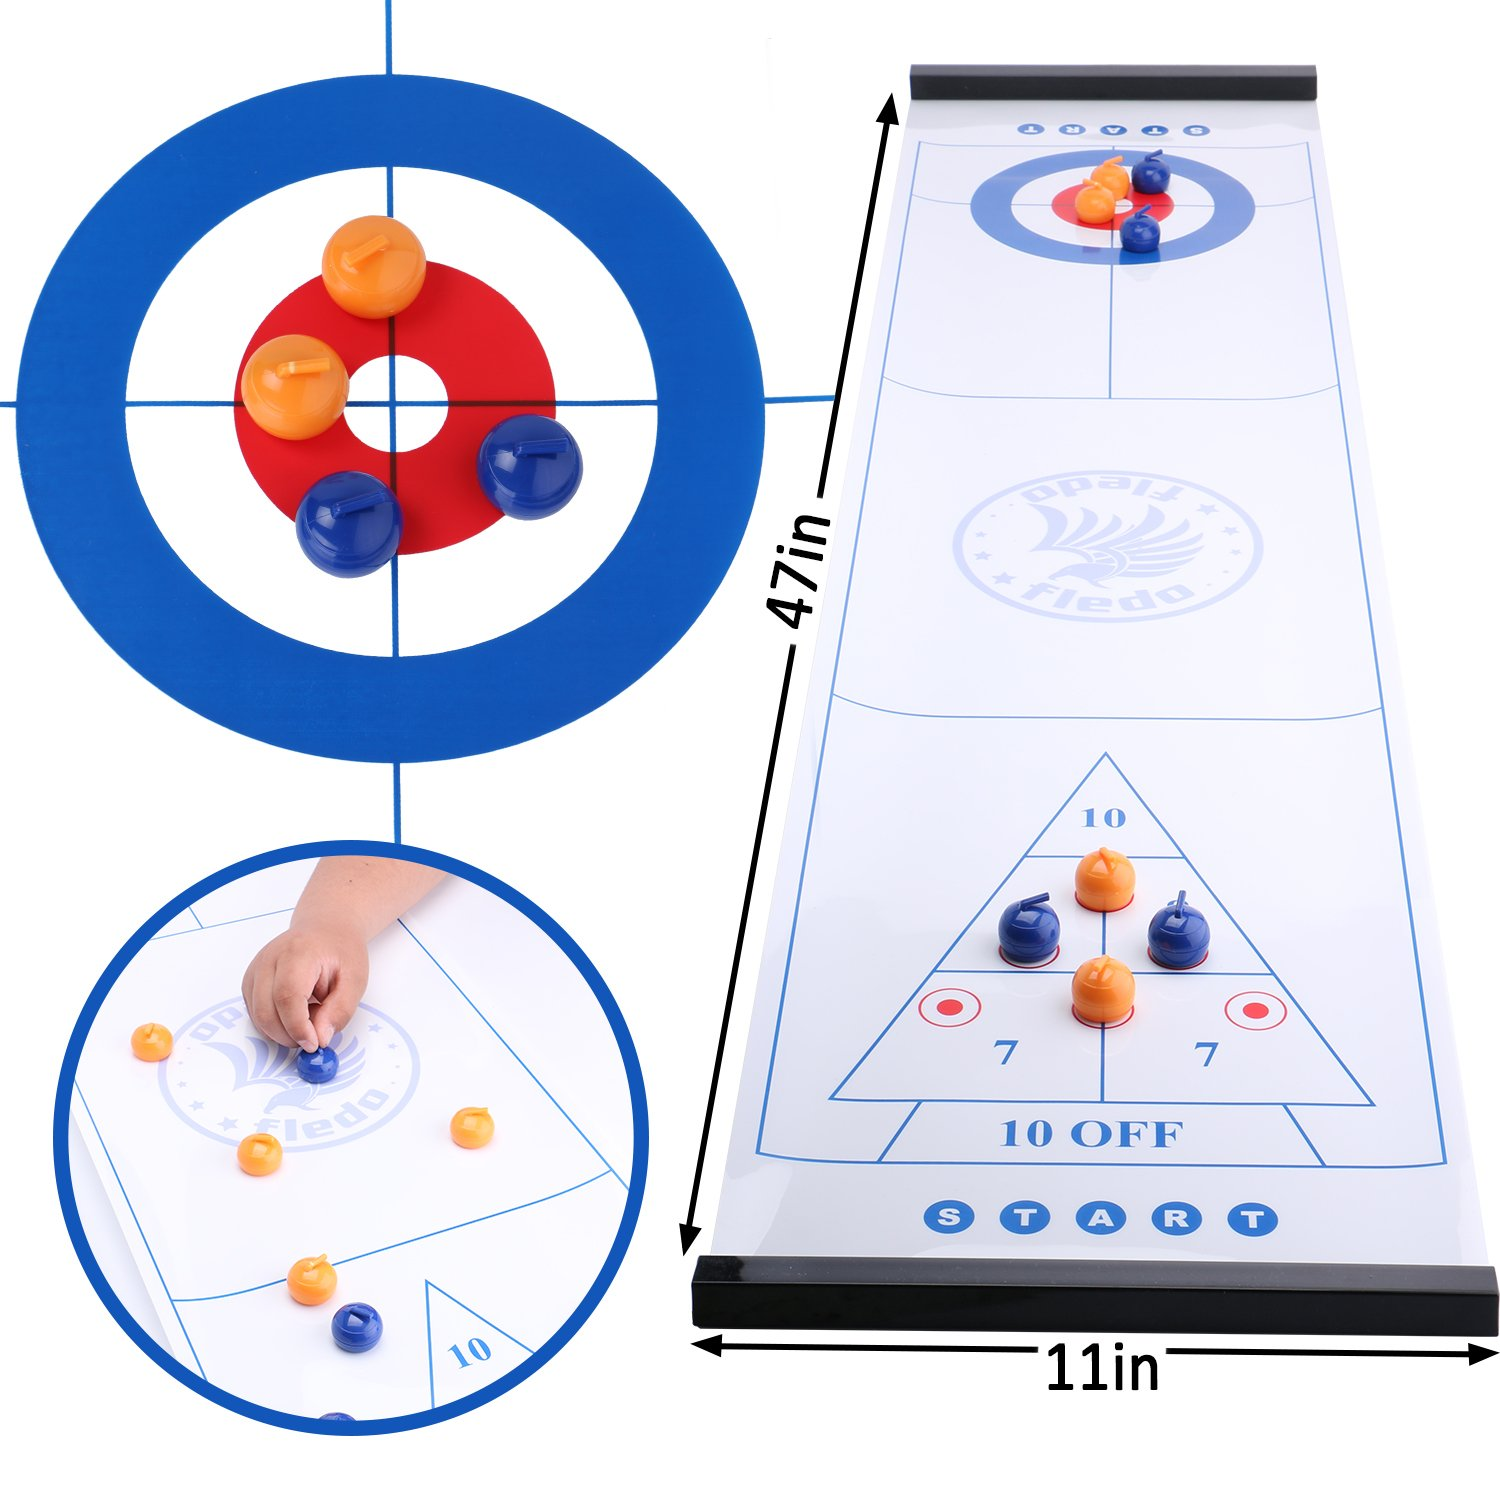 Fledo 3-in-1 Table Games for Families - Tabletop Curling 、Shuffleboard and Bowling Games - Quick and Easy to Set-up - for Adults and Kids - Family Game or Travel Game